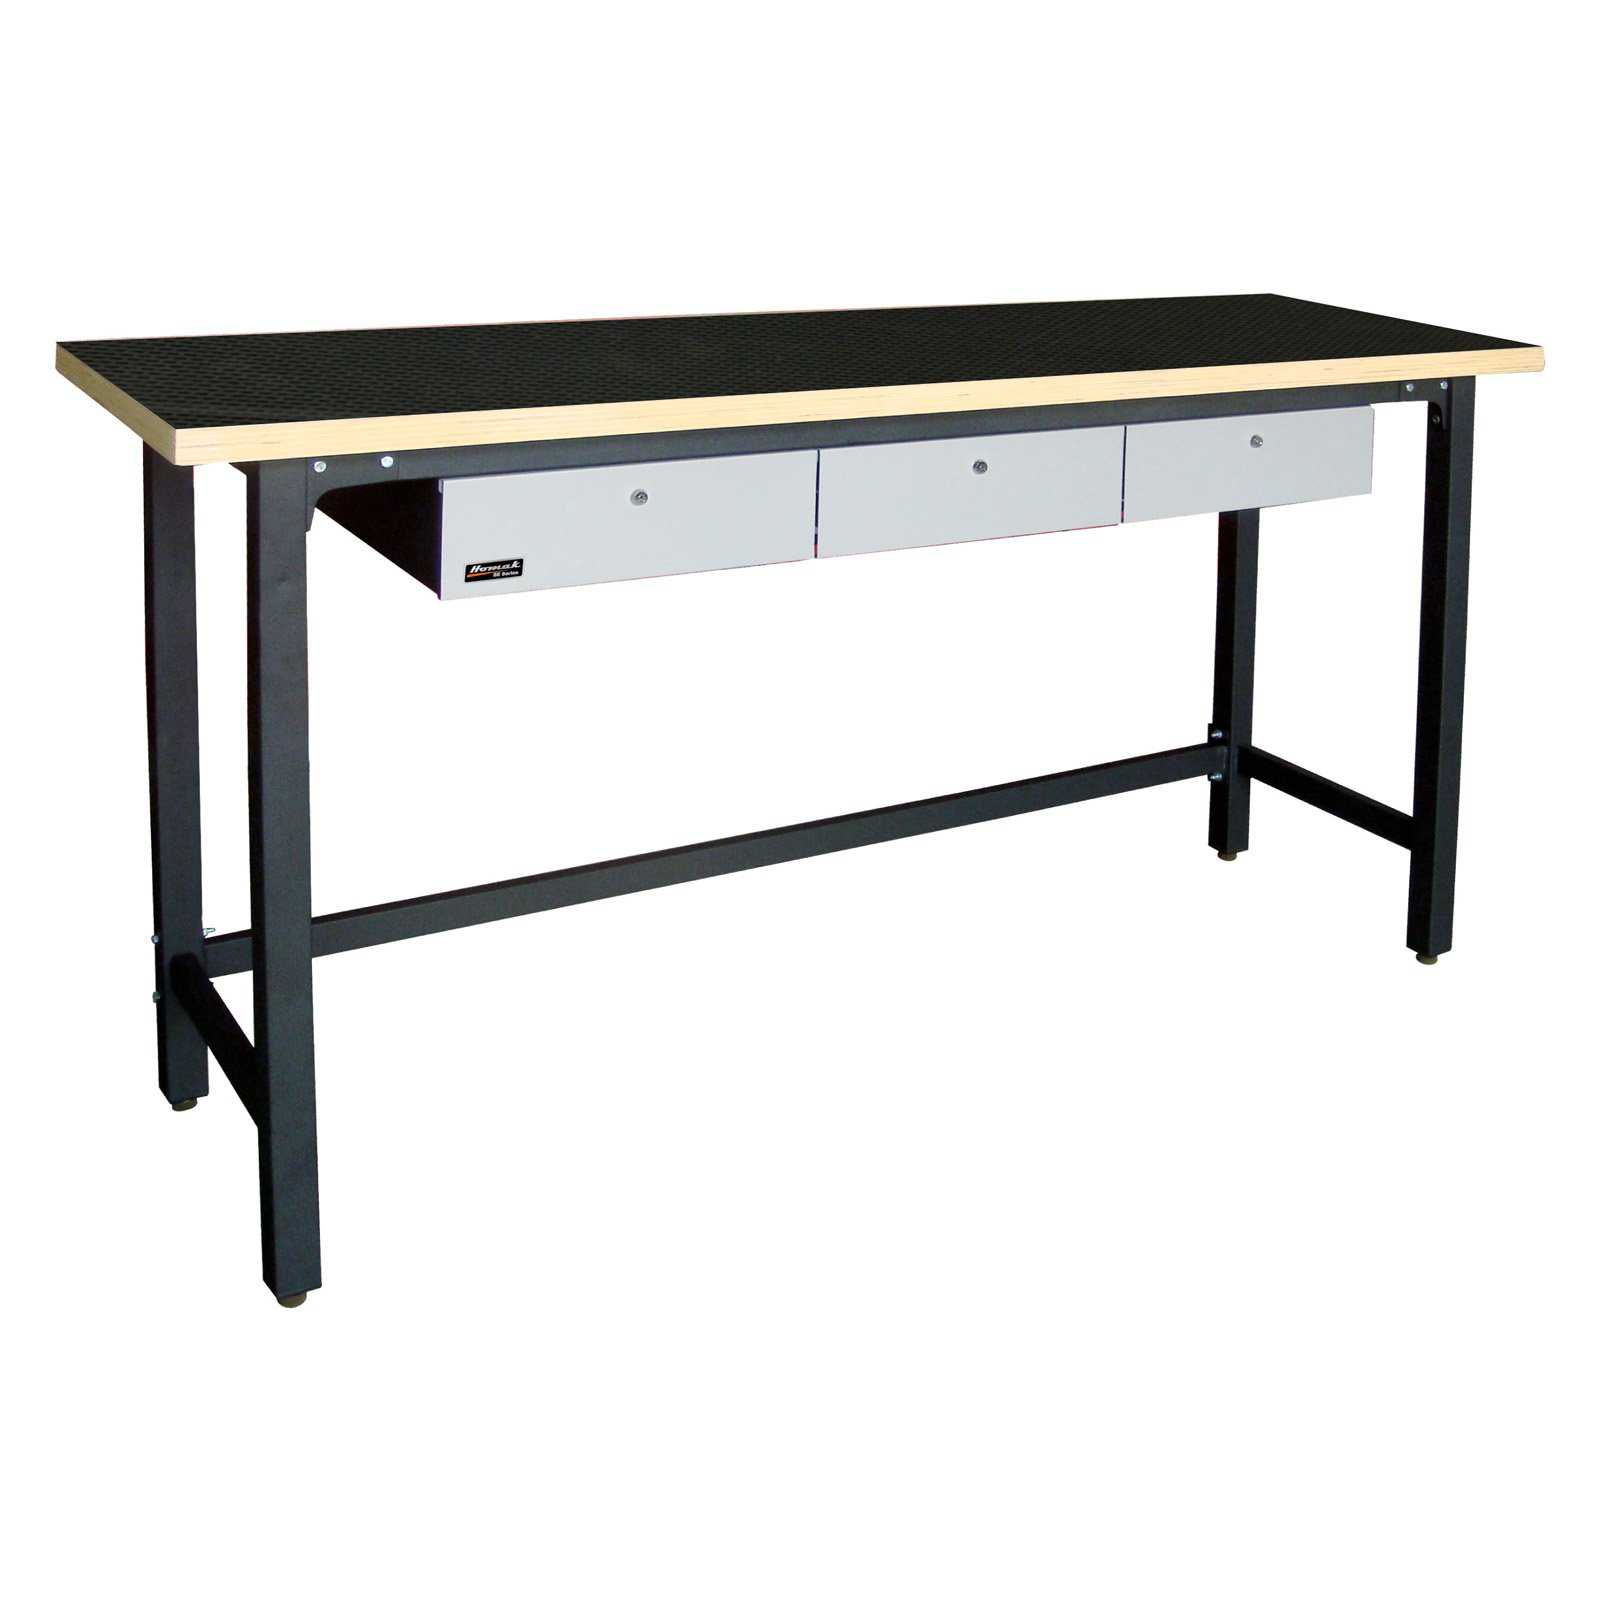 Homak 79 in. Steel Workbench with Wood Top